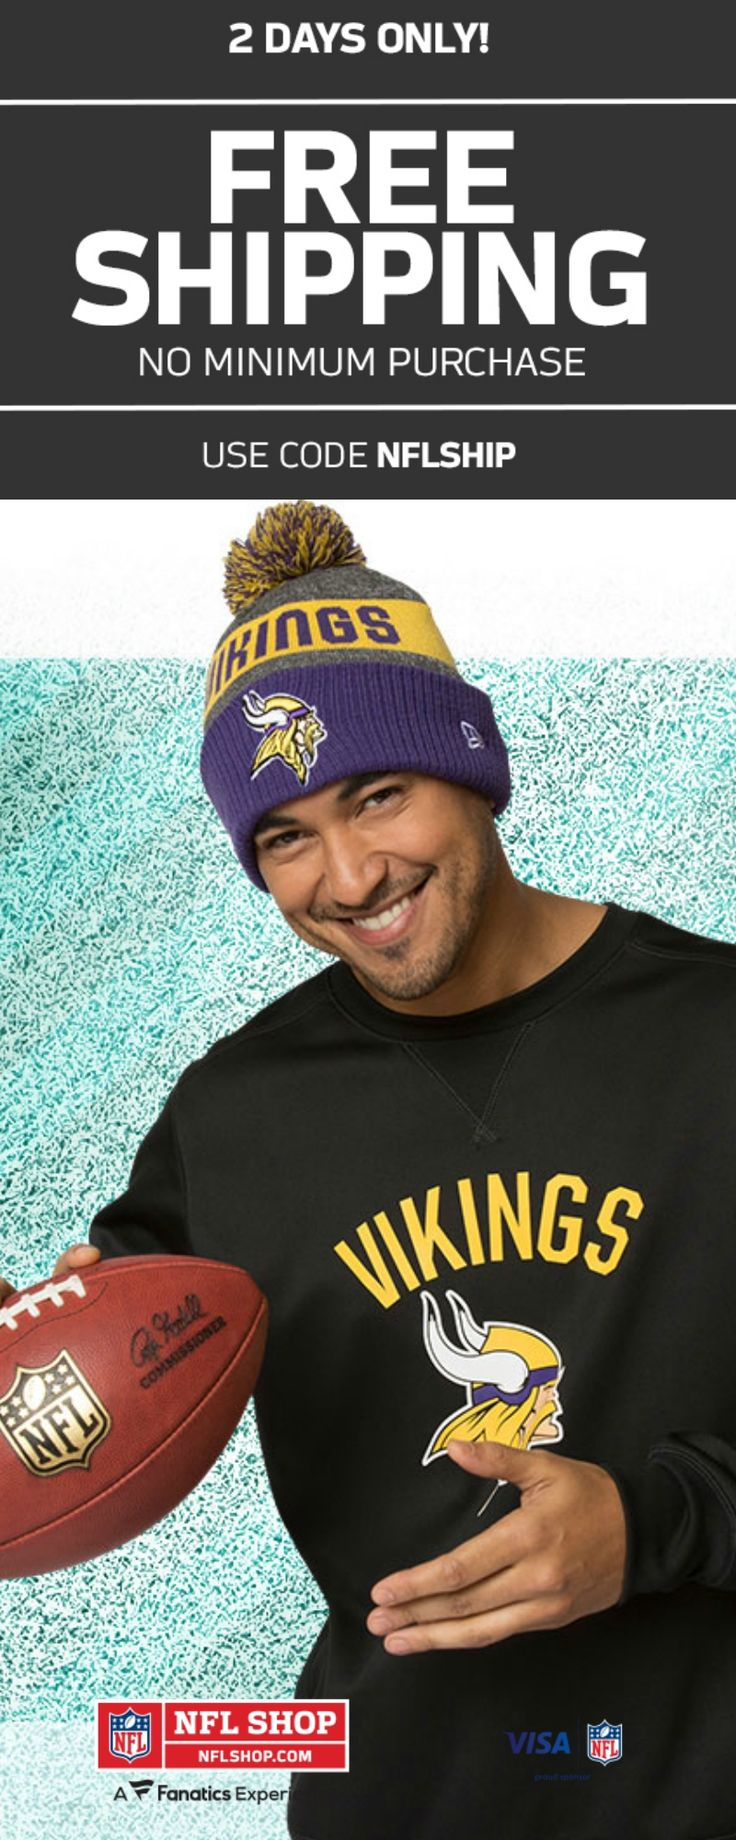 2 DAYS ONLY! | FREE SHIPPING WITH ANY PURCHASE AT NFL SHOP | USE CODE: NFLSHIP #holiday #christmas #gifts #nfl #shop #football #fan #him #her #vikings #packers #patriots #eagles